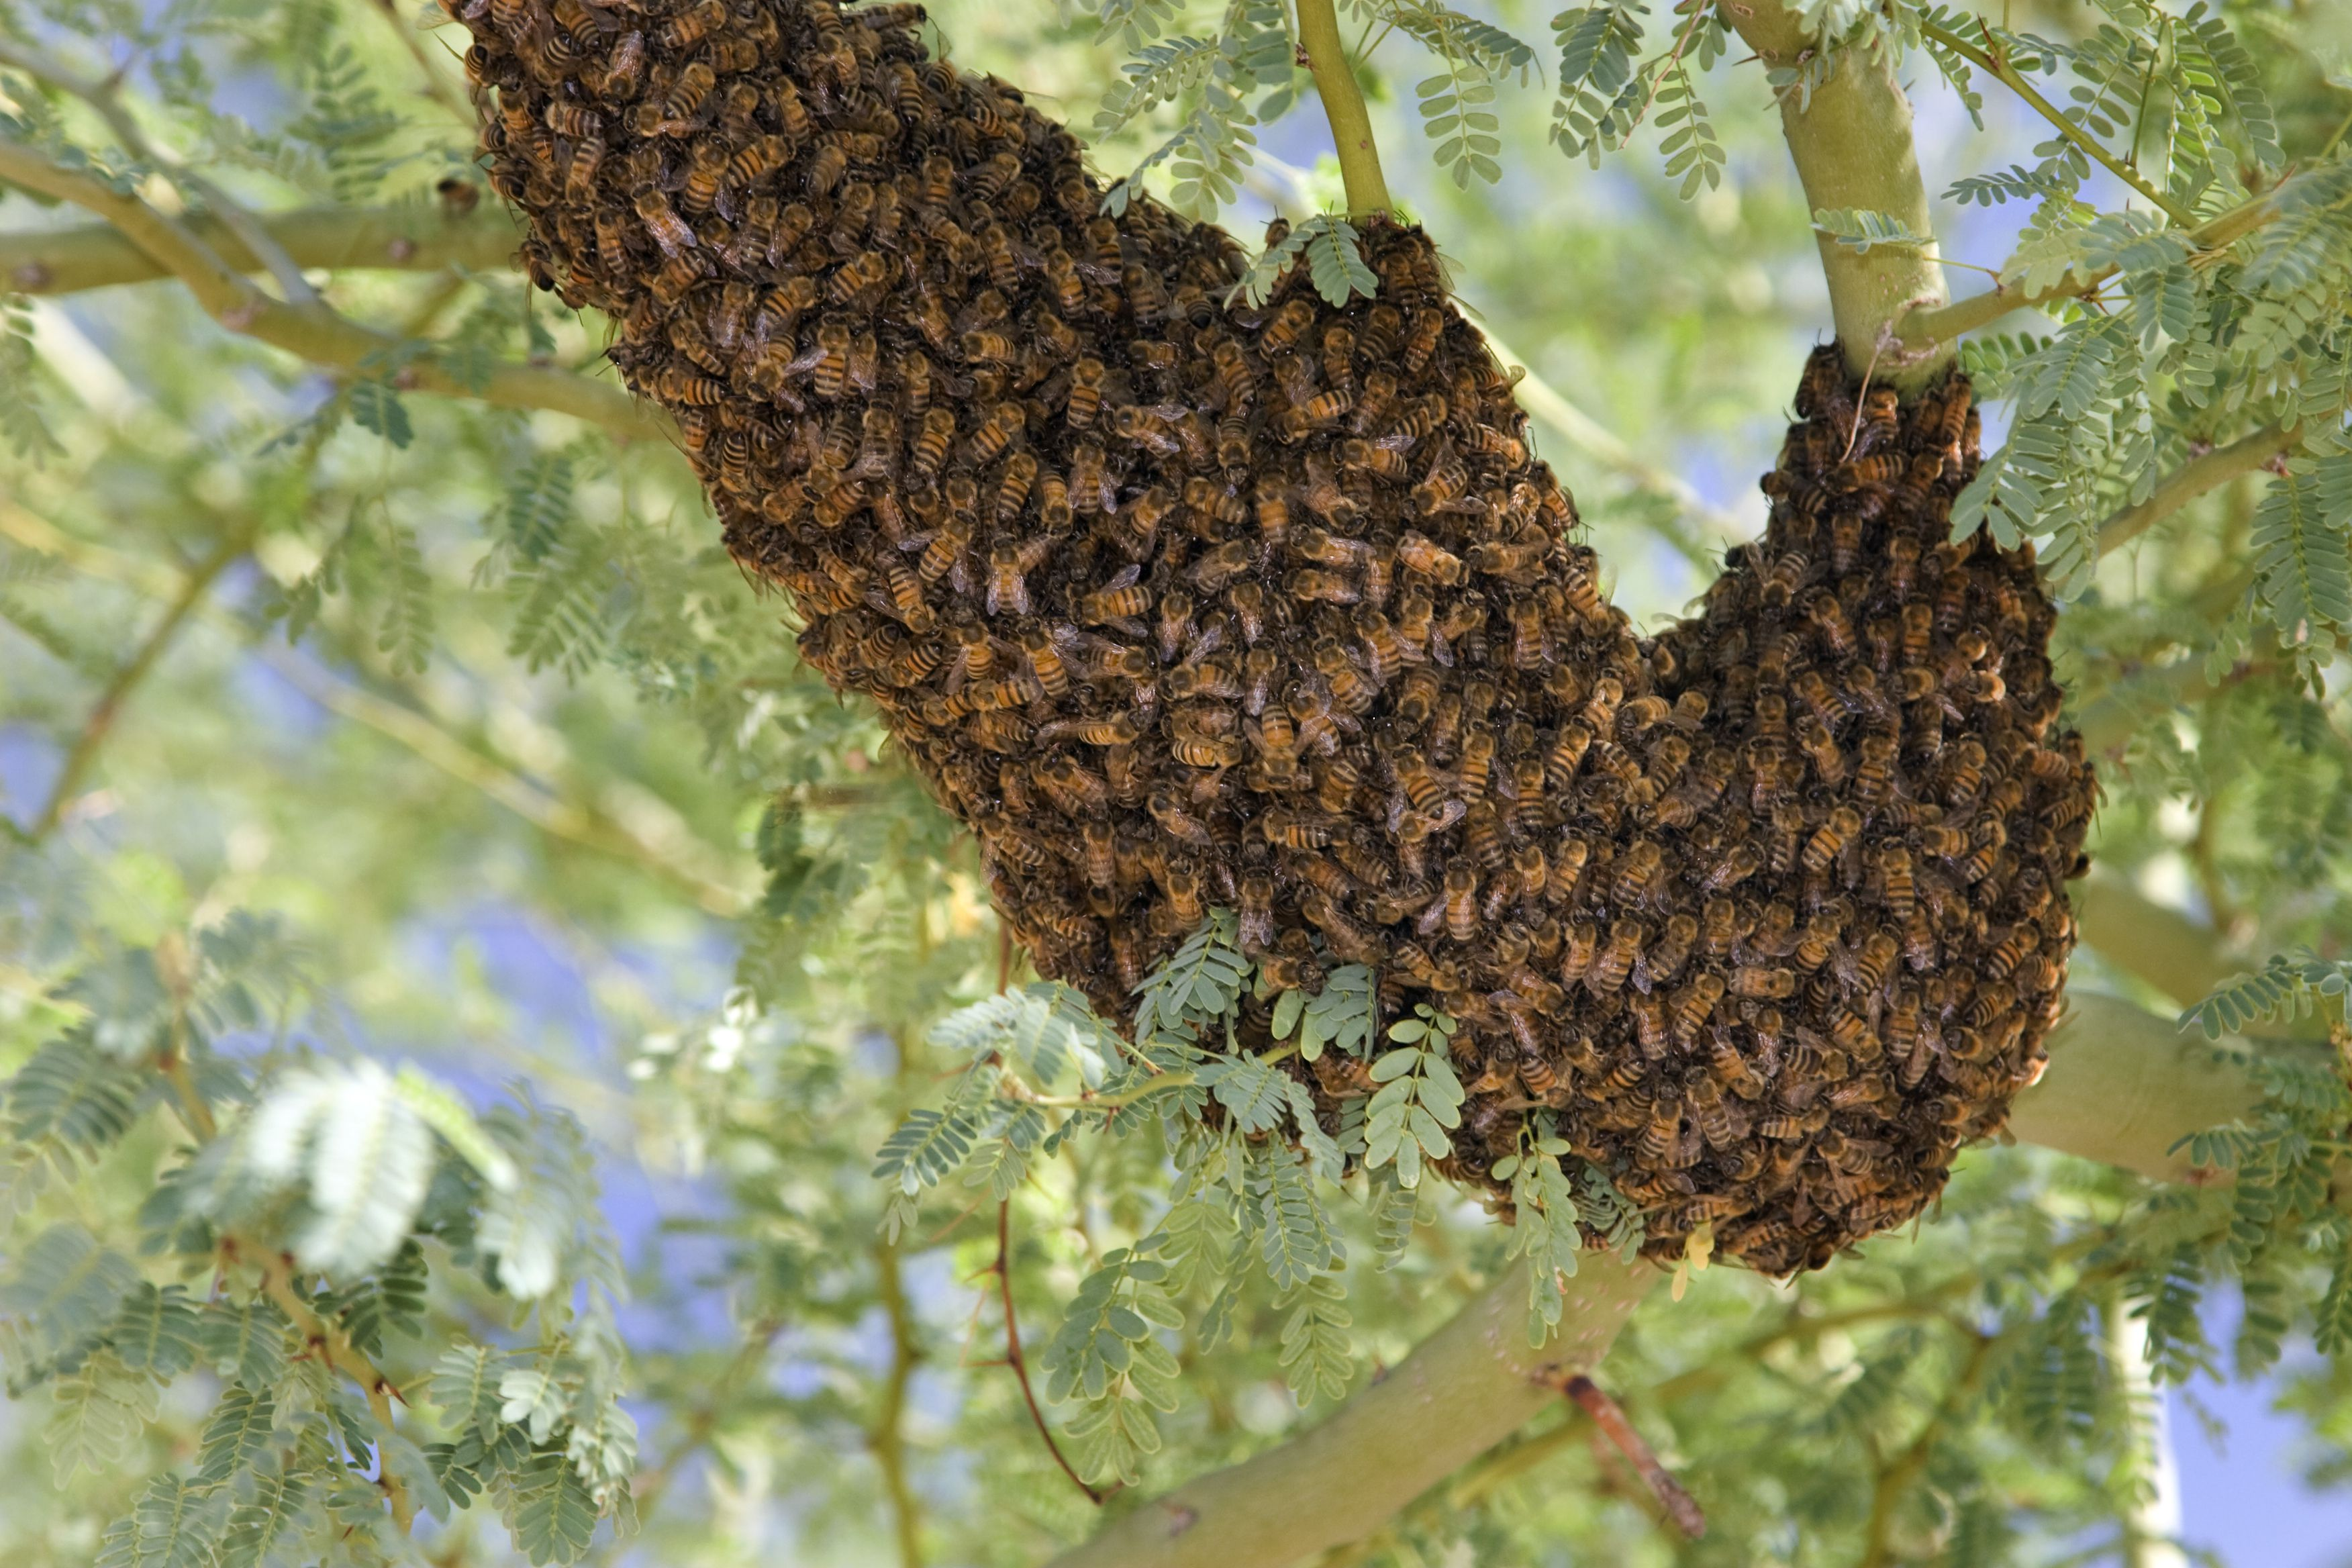 How To Treat Stings From Africanized Honey Bees